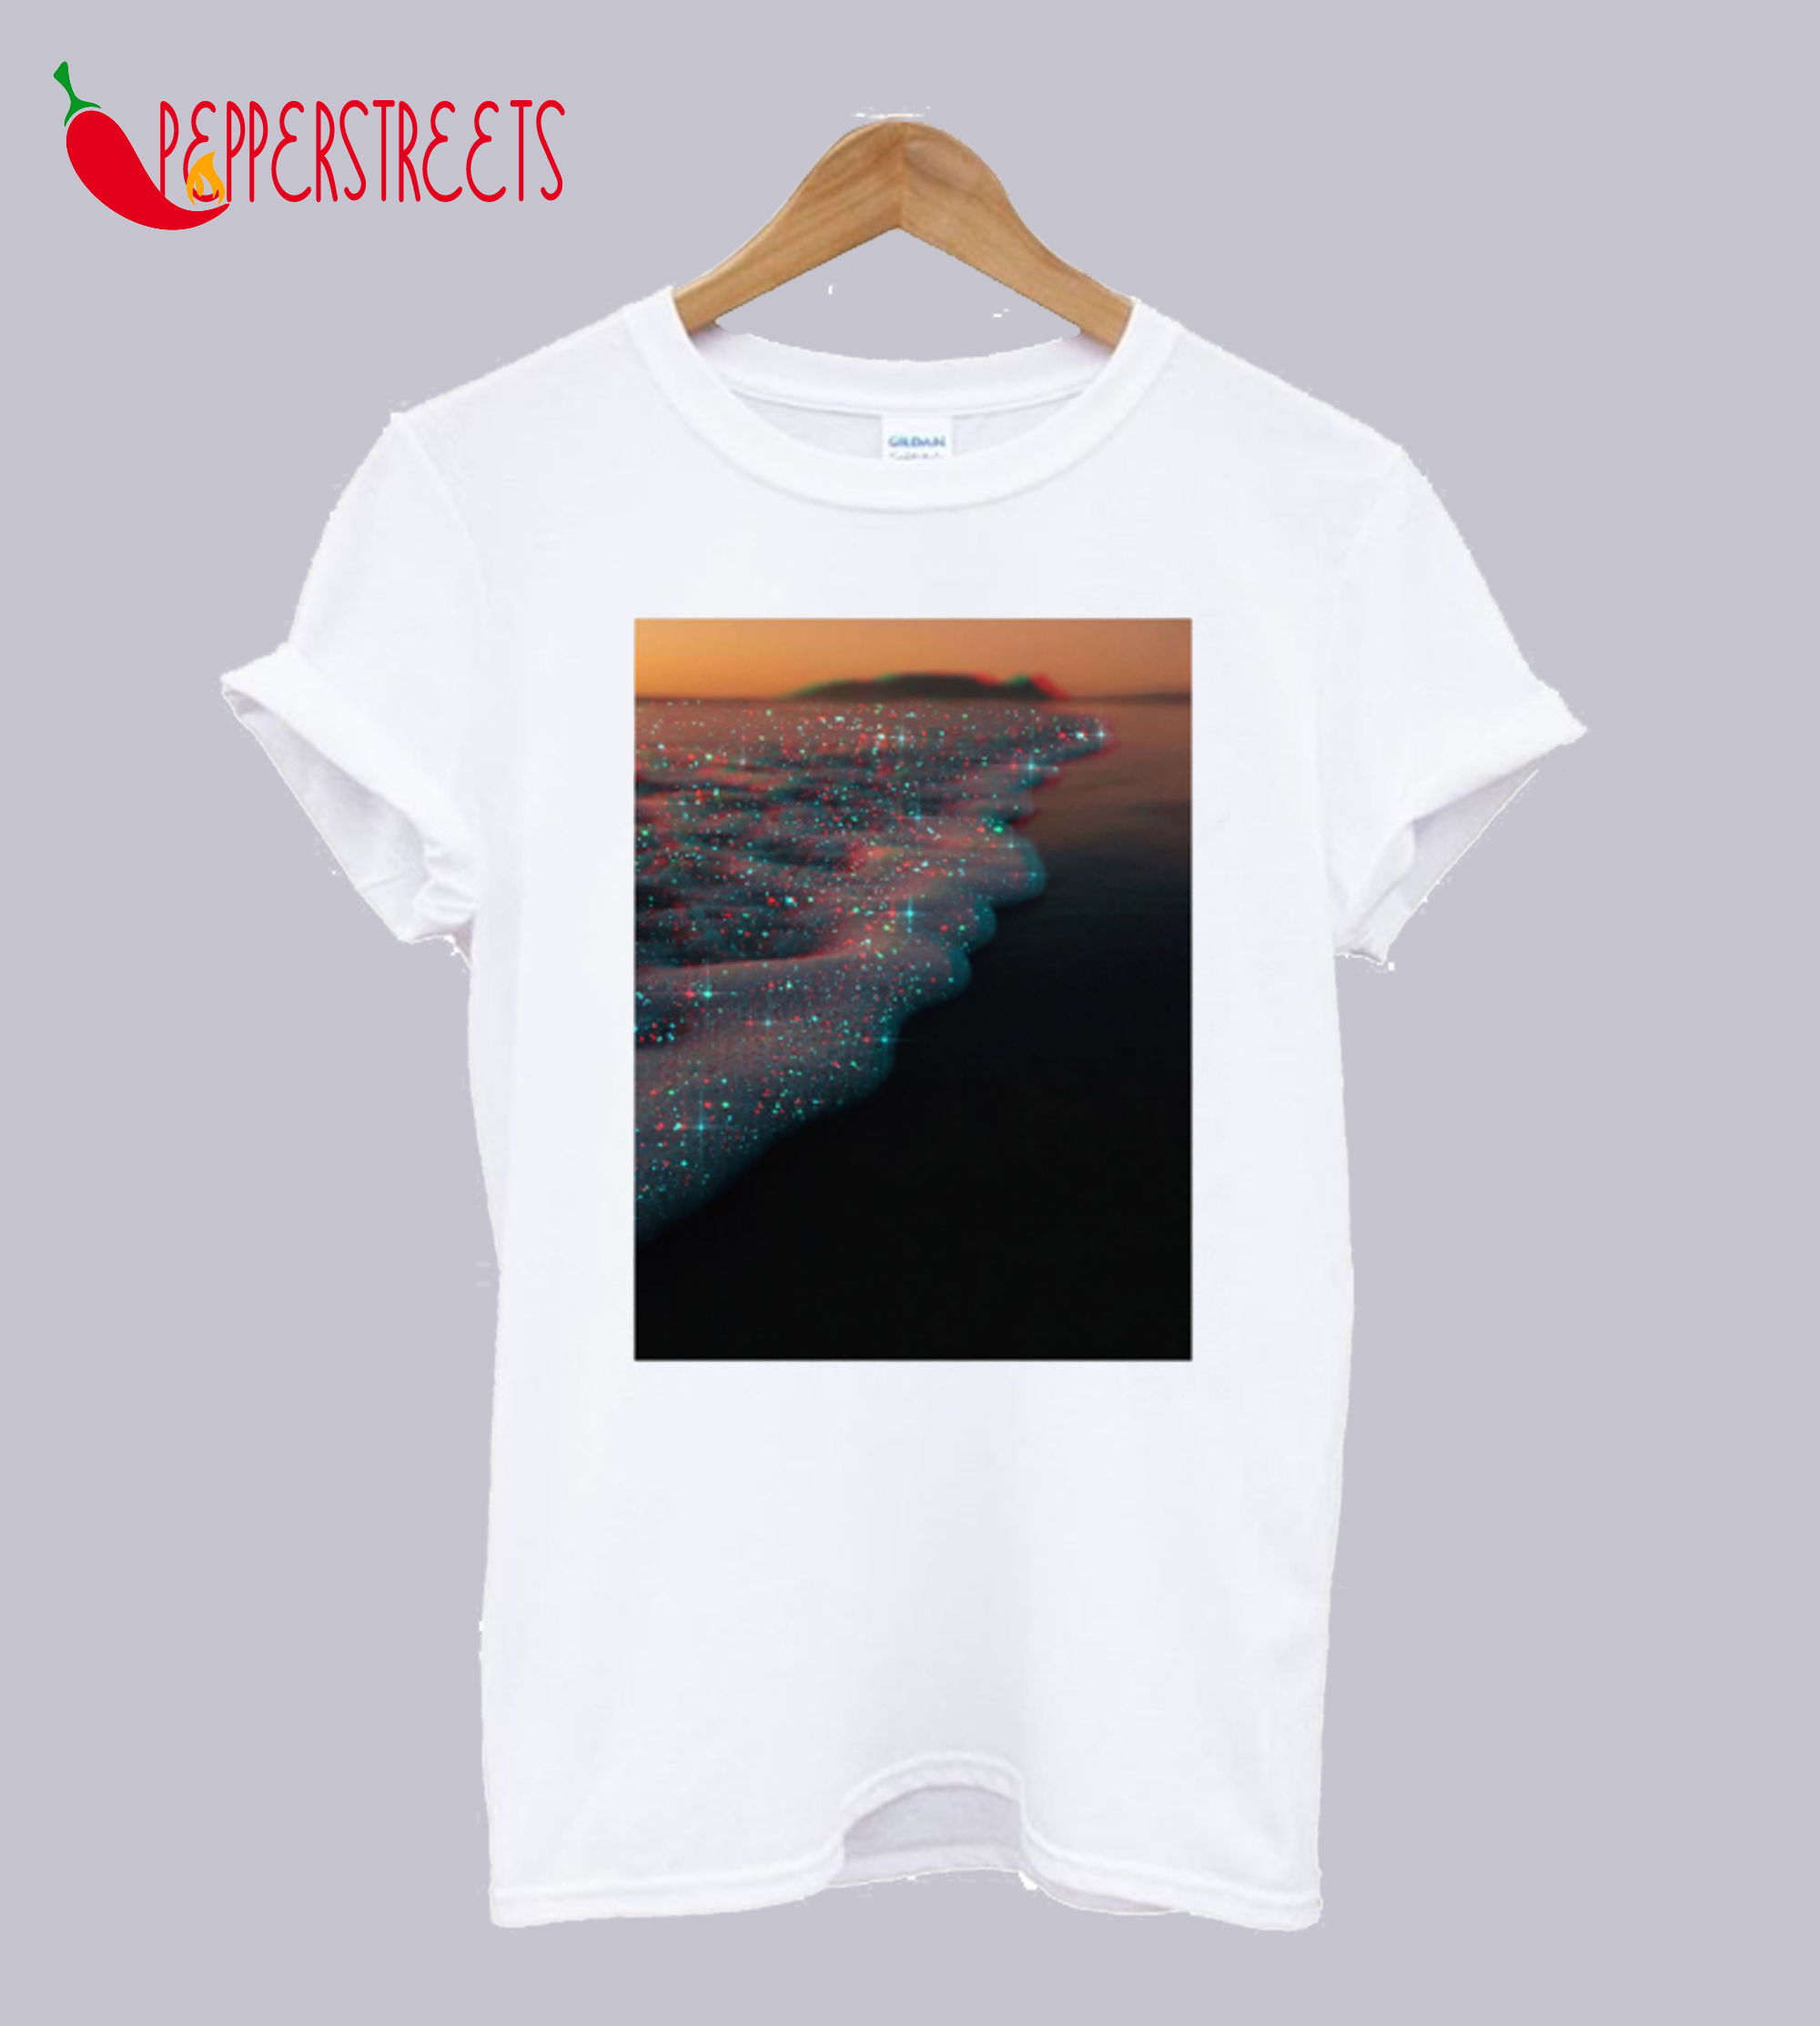 Teenage Aesthetic T-Shirt